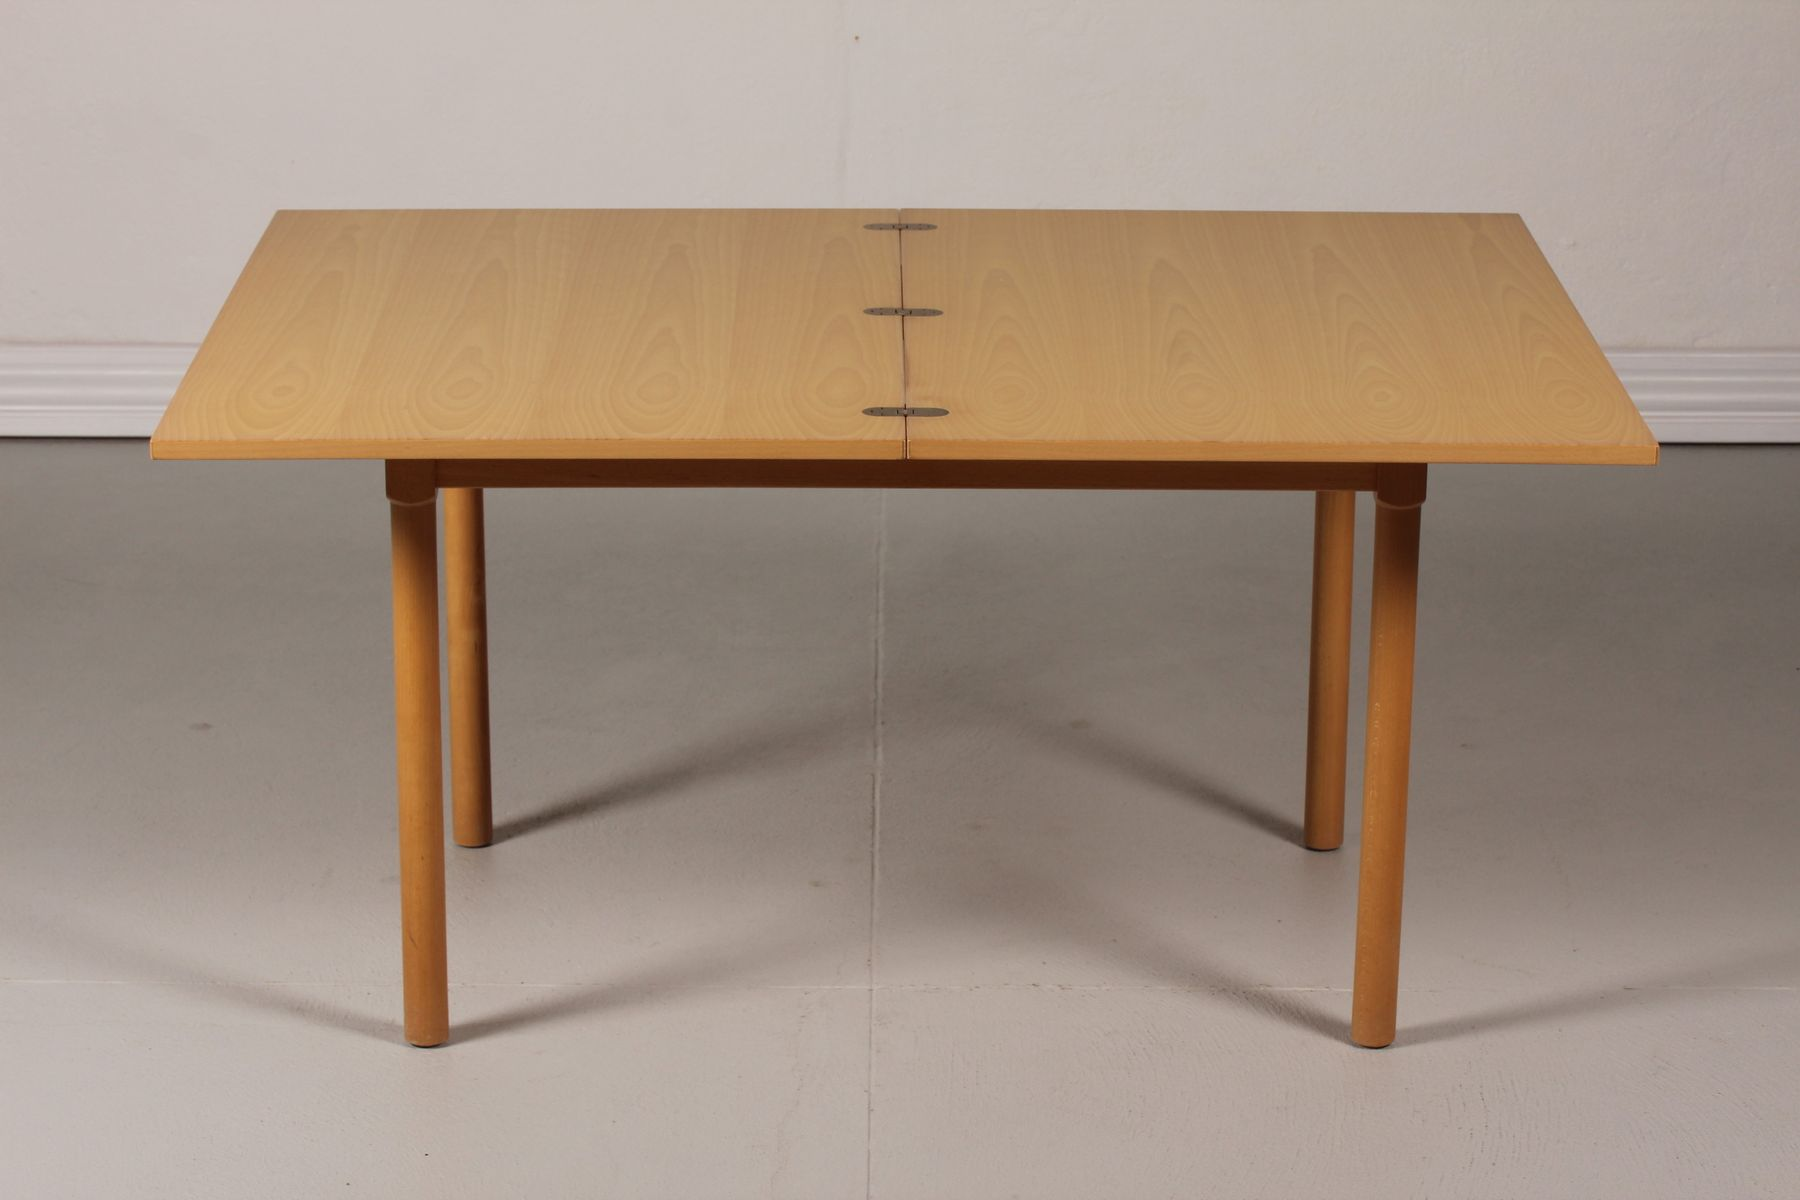 Danish fh 4500 beech coffee table by b rge mogensen for for Beech coffee table